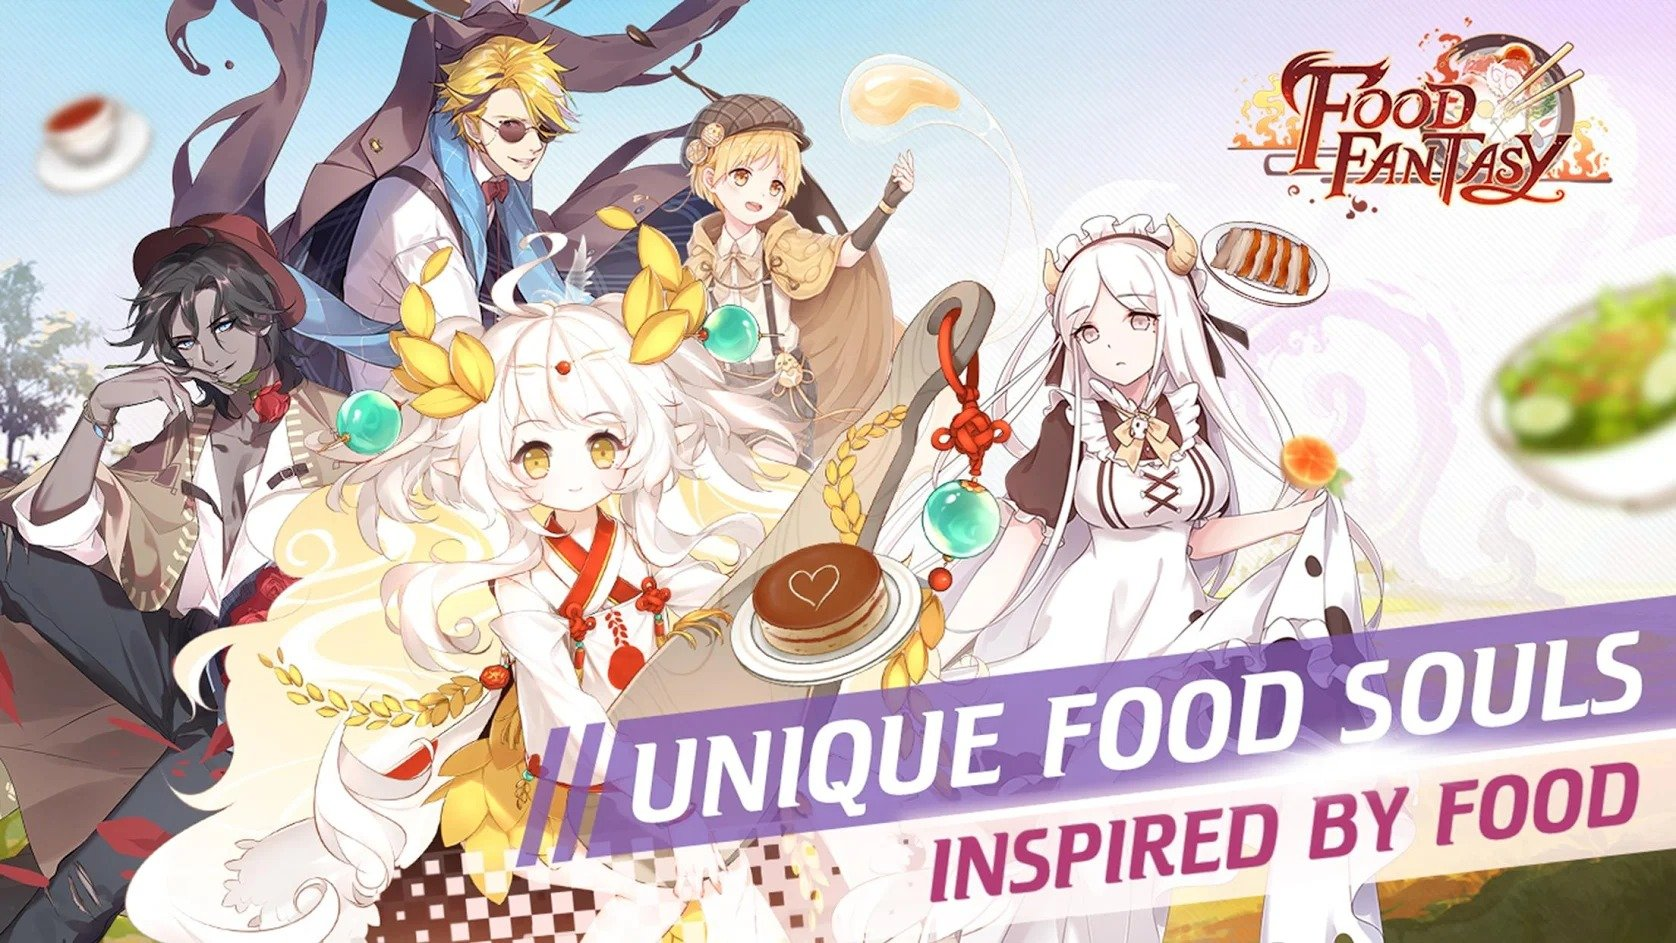 Food Fantasy graphics